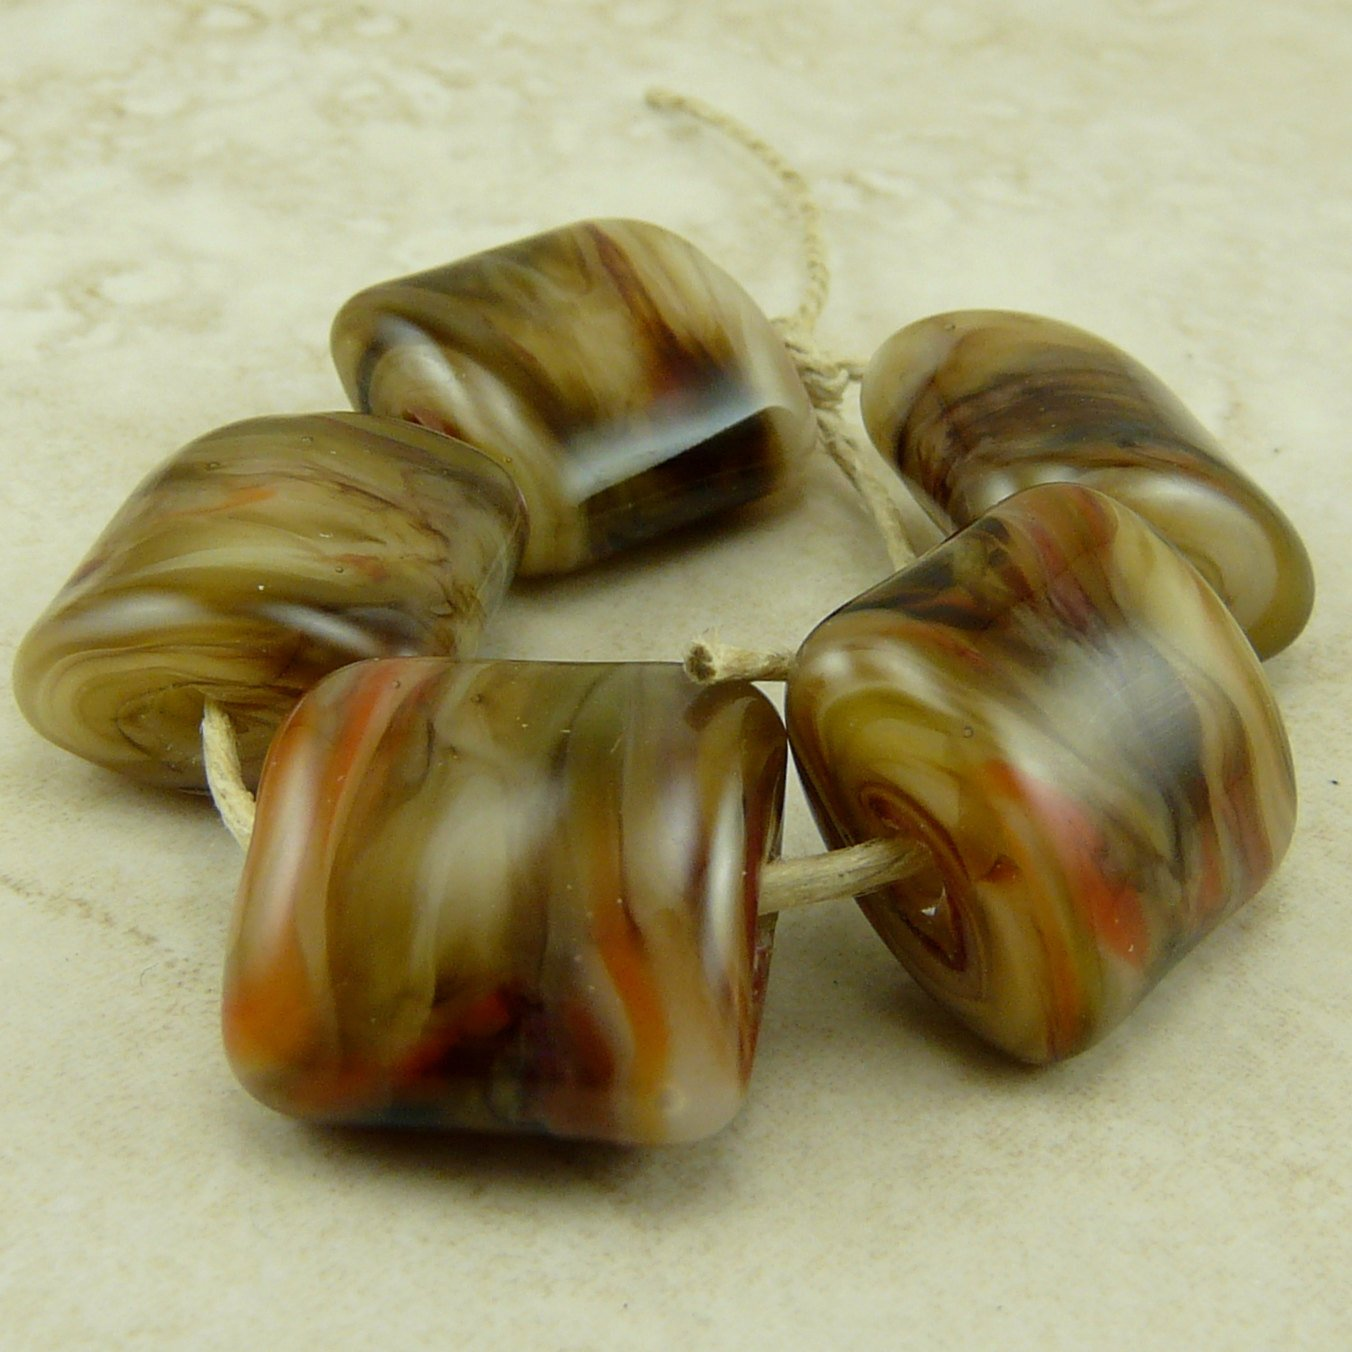 Autumn Leaves are Falling - Lampwork Bead Set by Dragynsfyre Designs - SRA